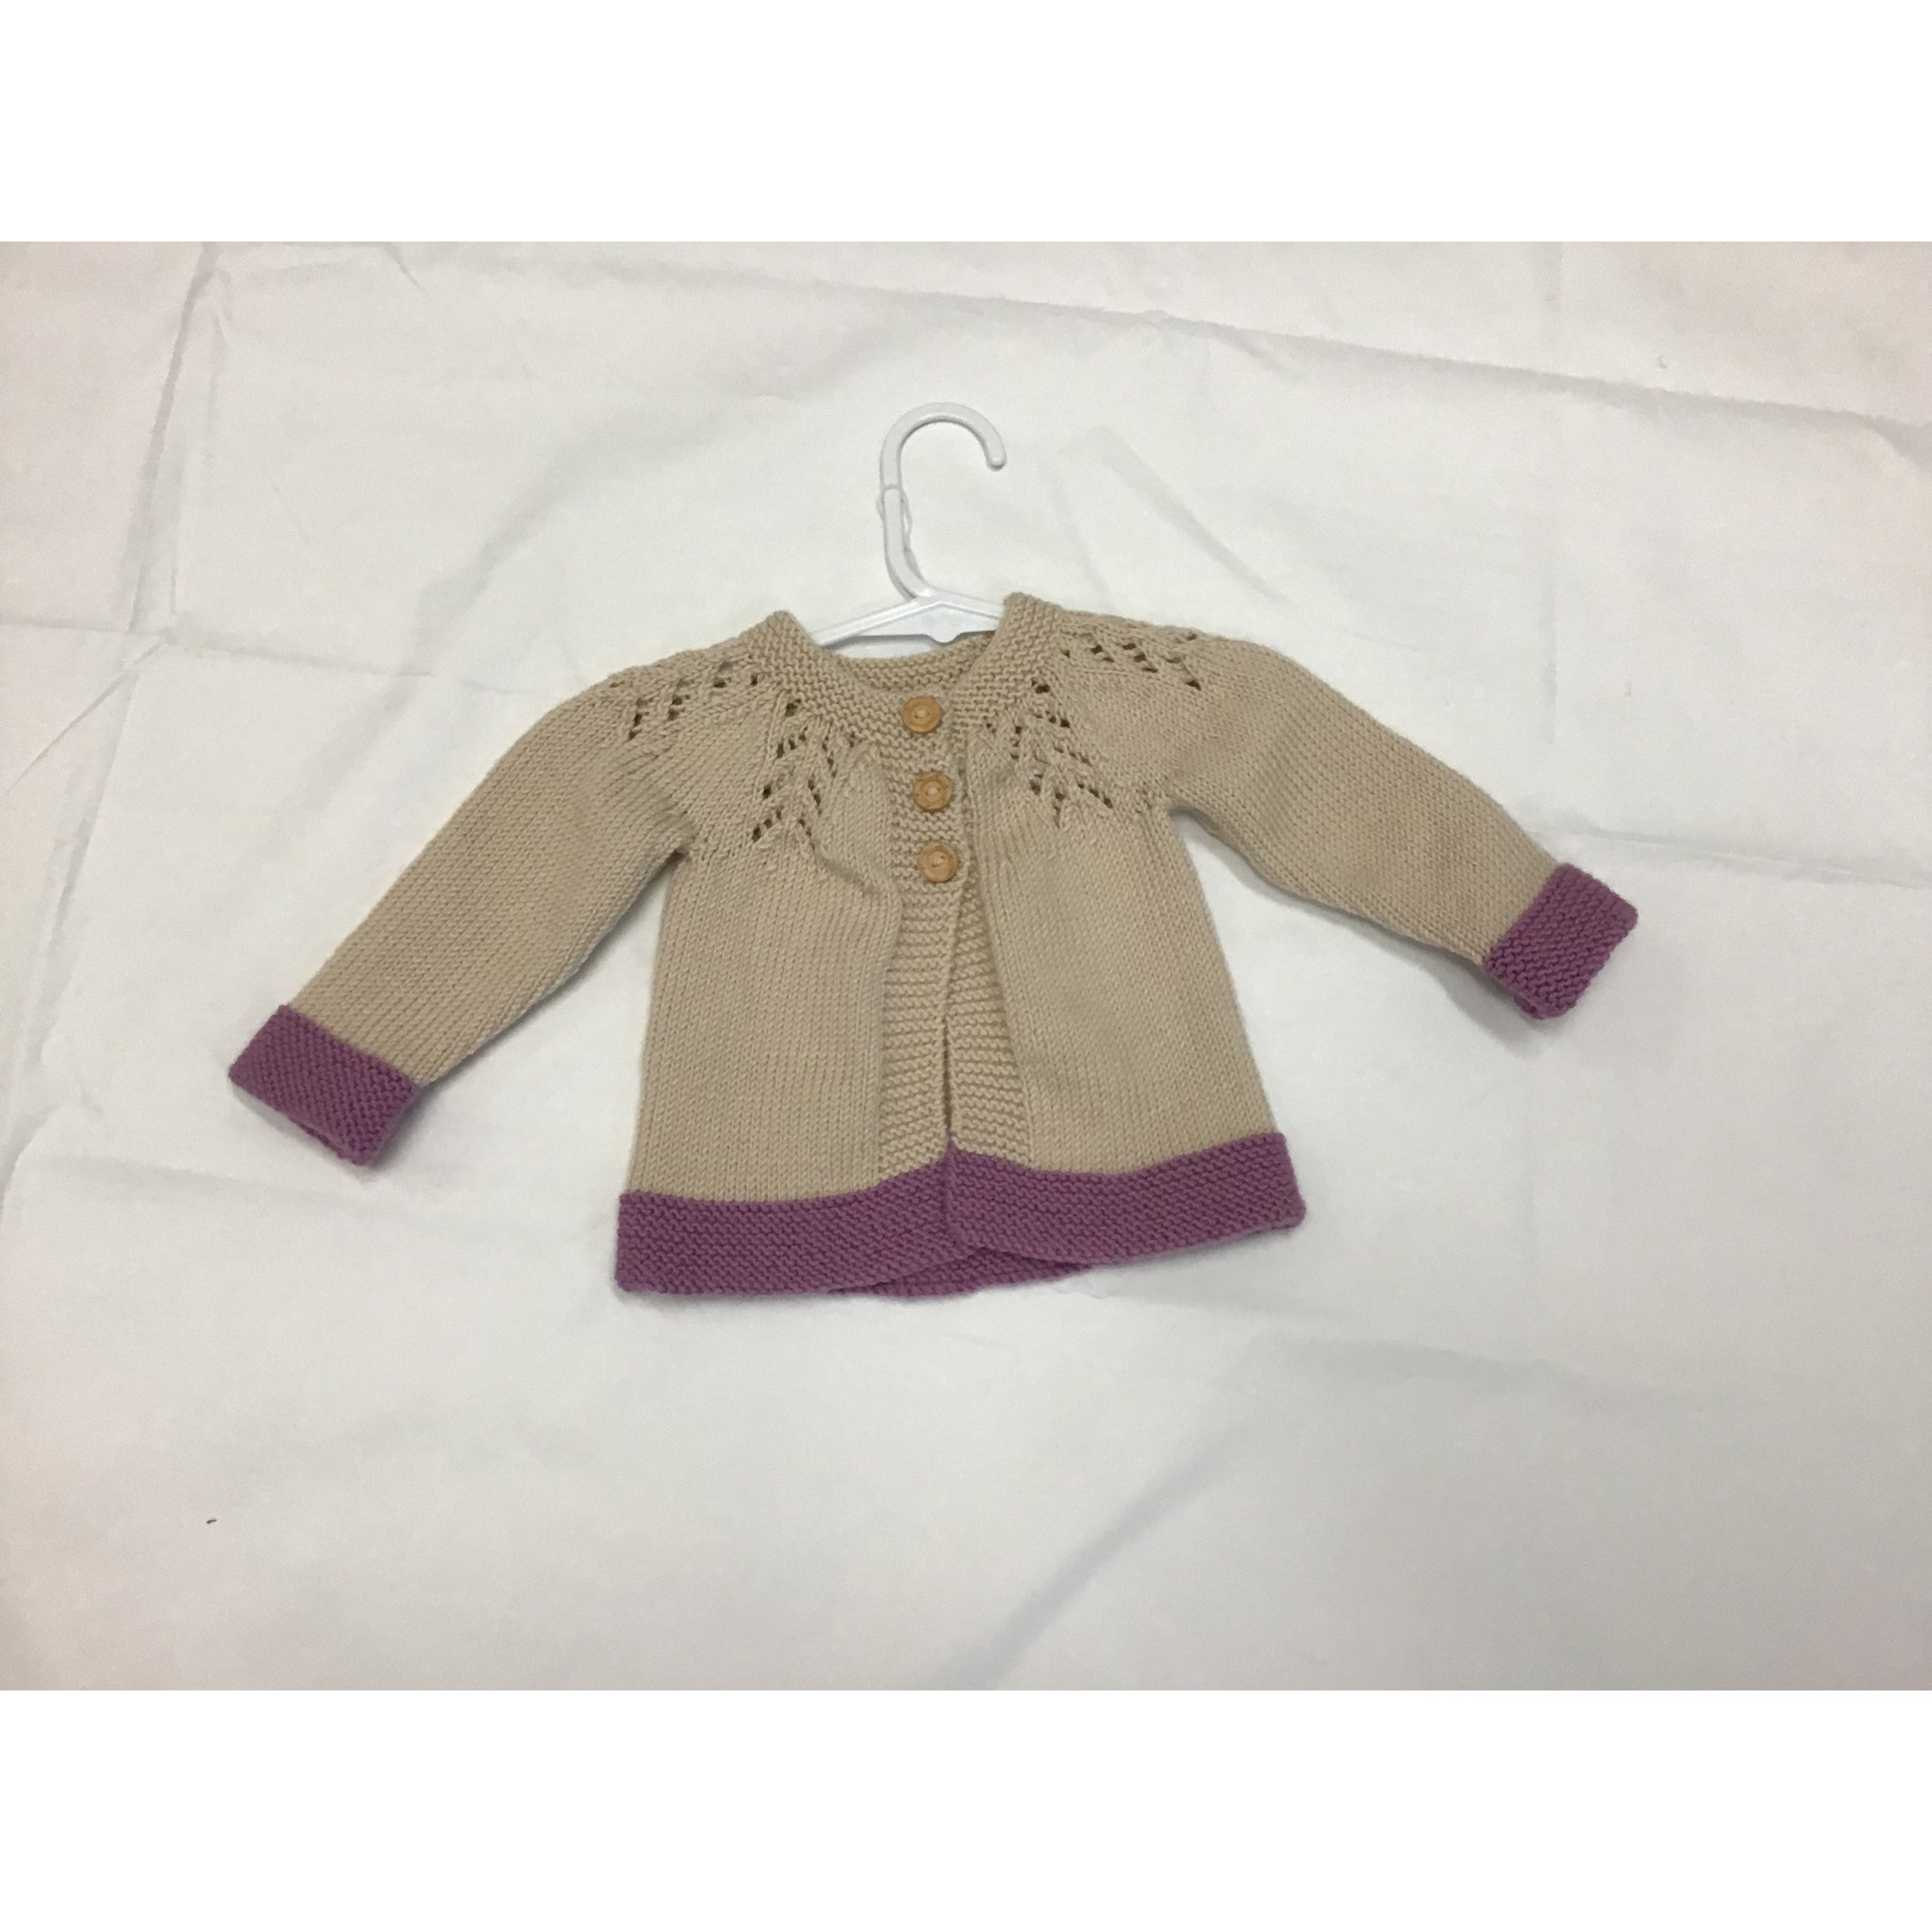 Hand knitted jacket 0-3 mths